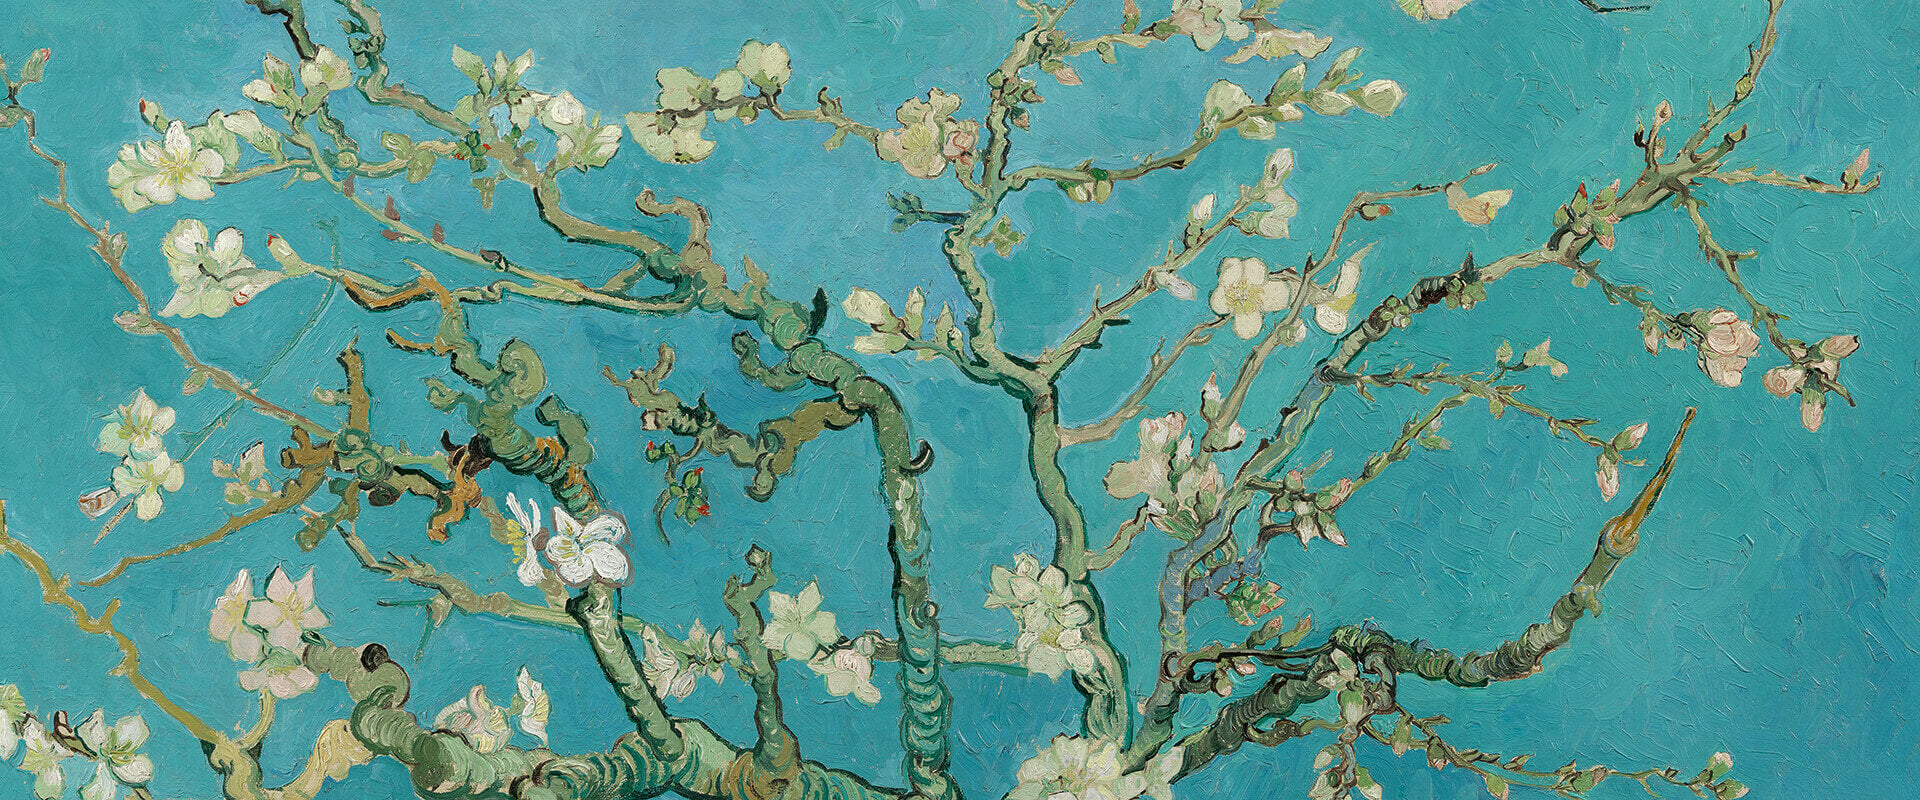 Vincent Van Gogh Artworks Collection | Buy Posters, Frames, Canvas, Digital Art & Large Size Prints Of The Famous Old Master's Artworks